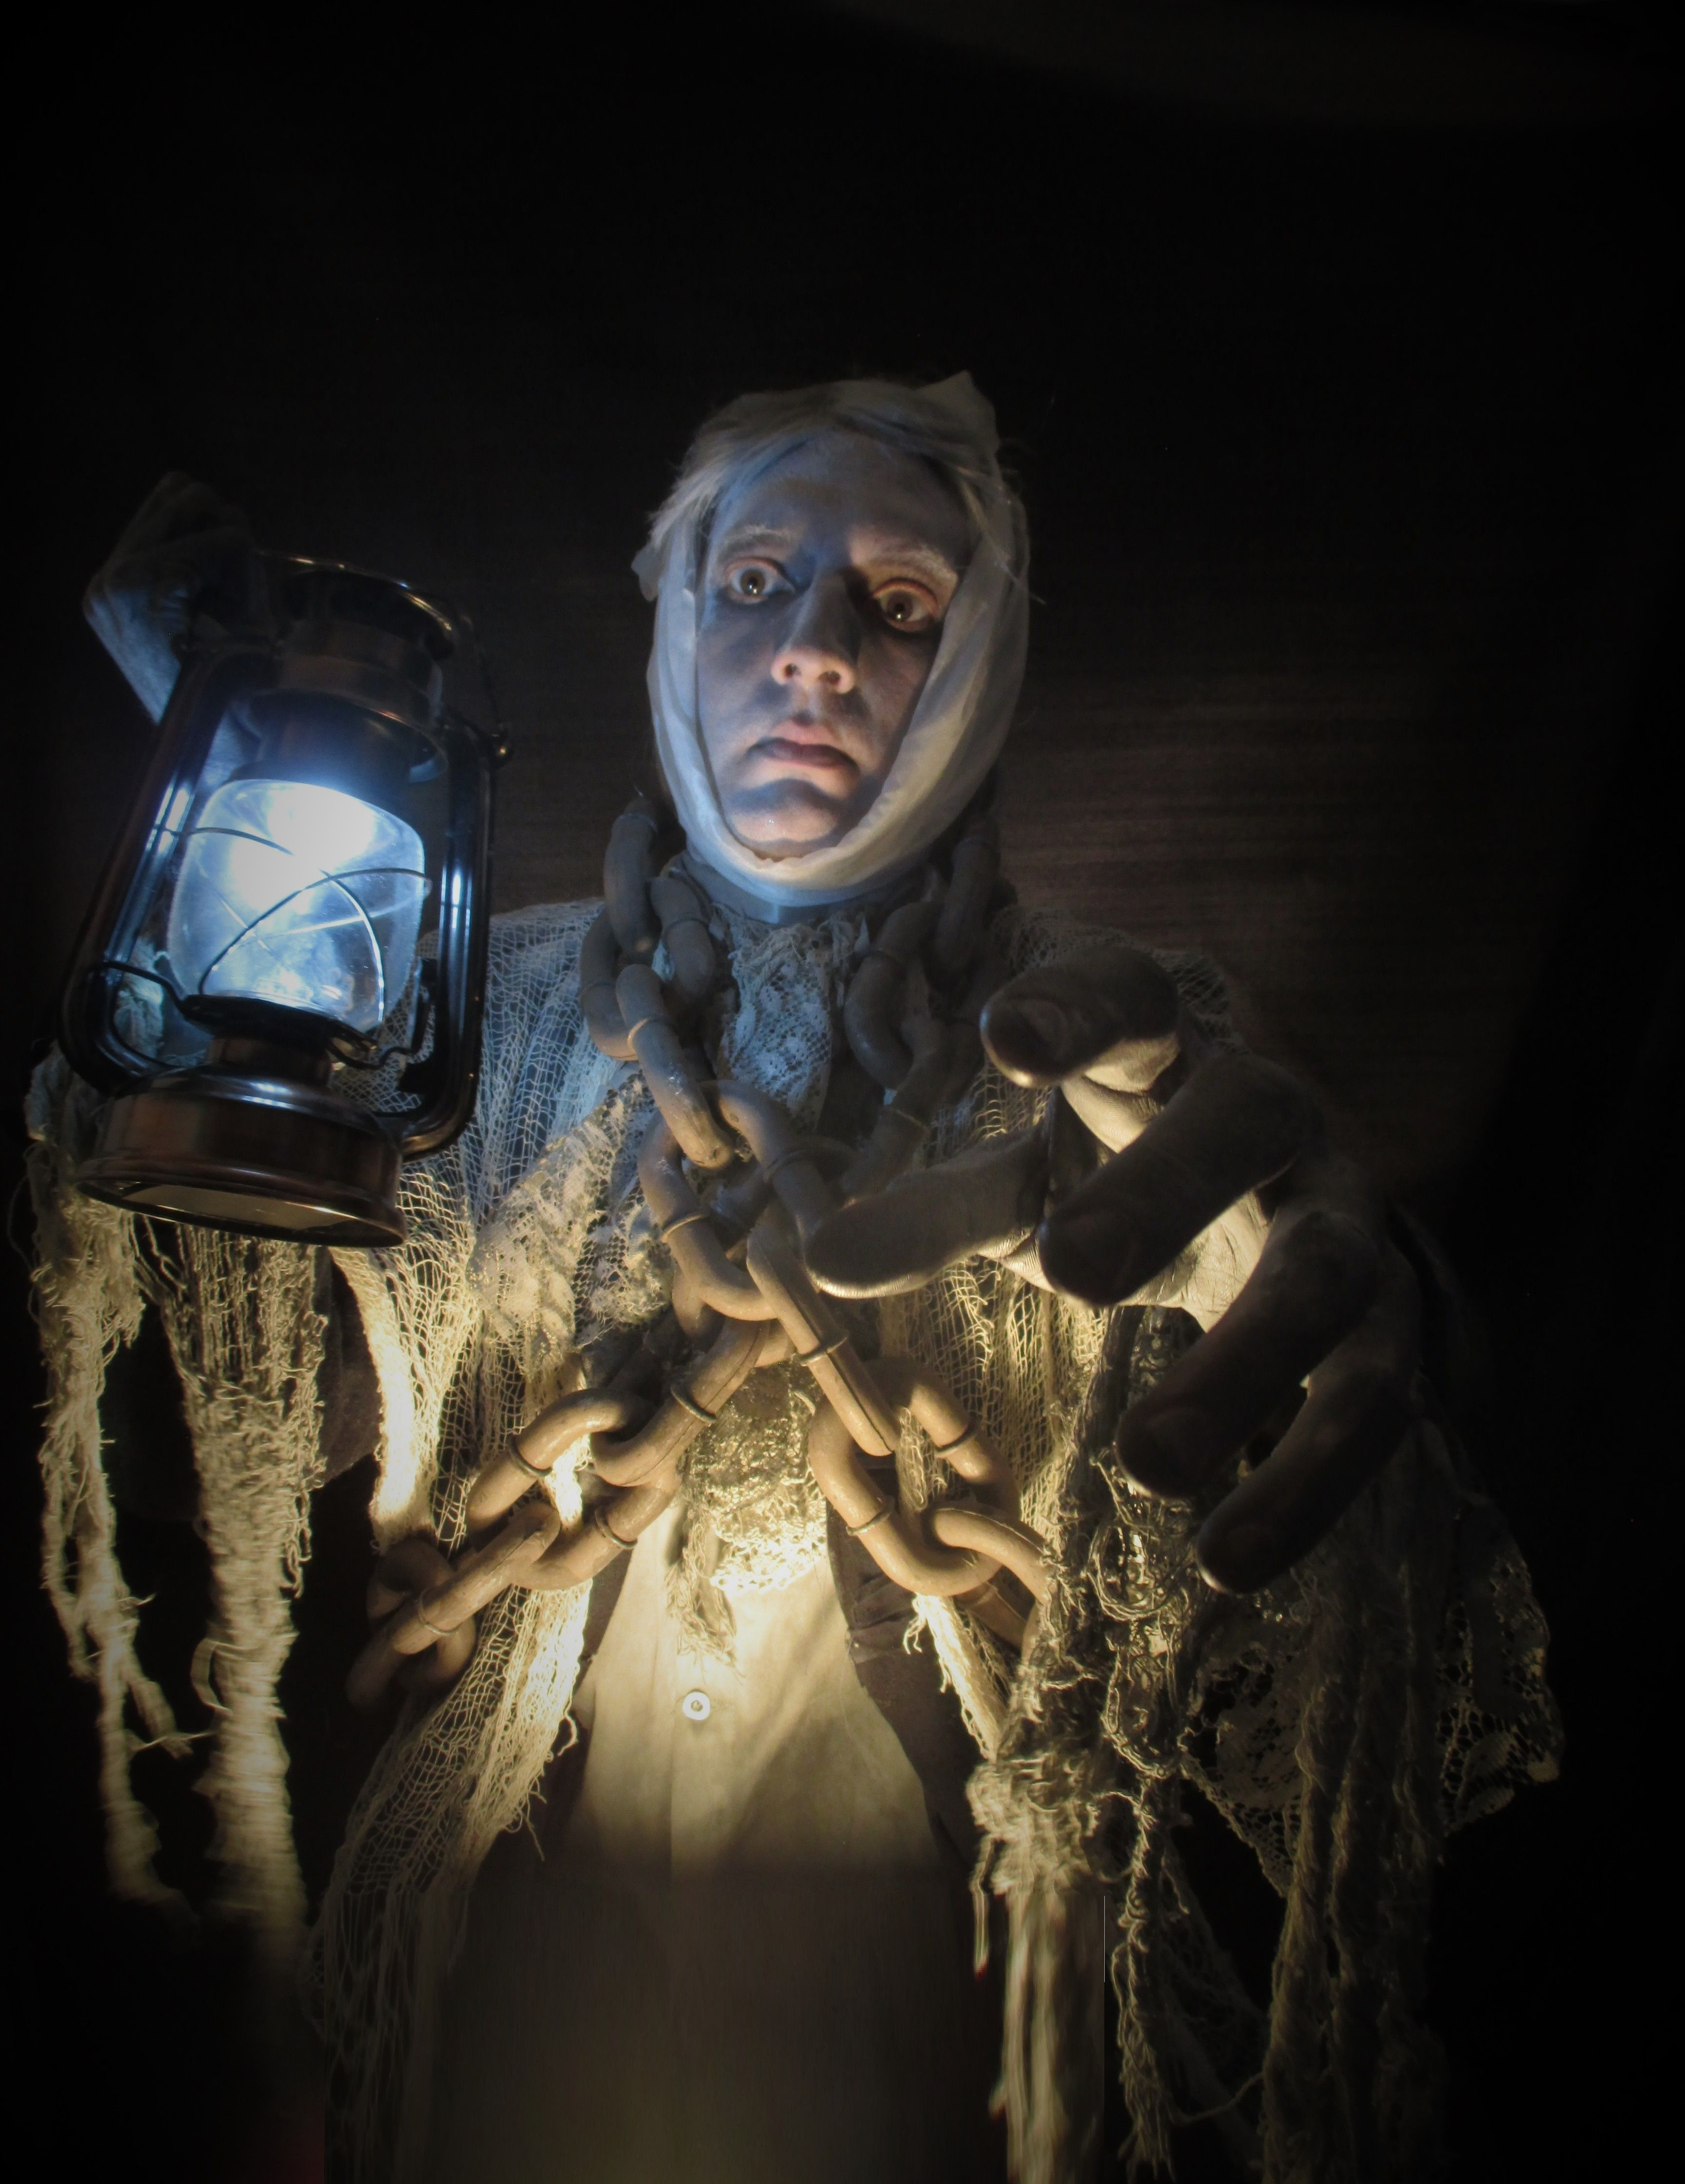 A Christmas Carol Ghosts.A Christmas Carol Ghost Of Marley Costume Marley S Ghost